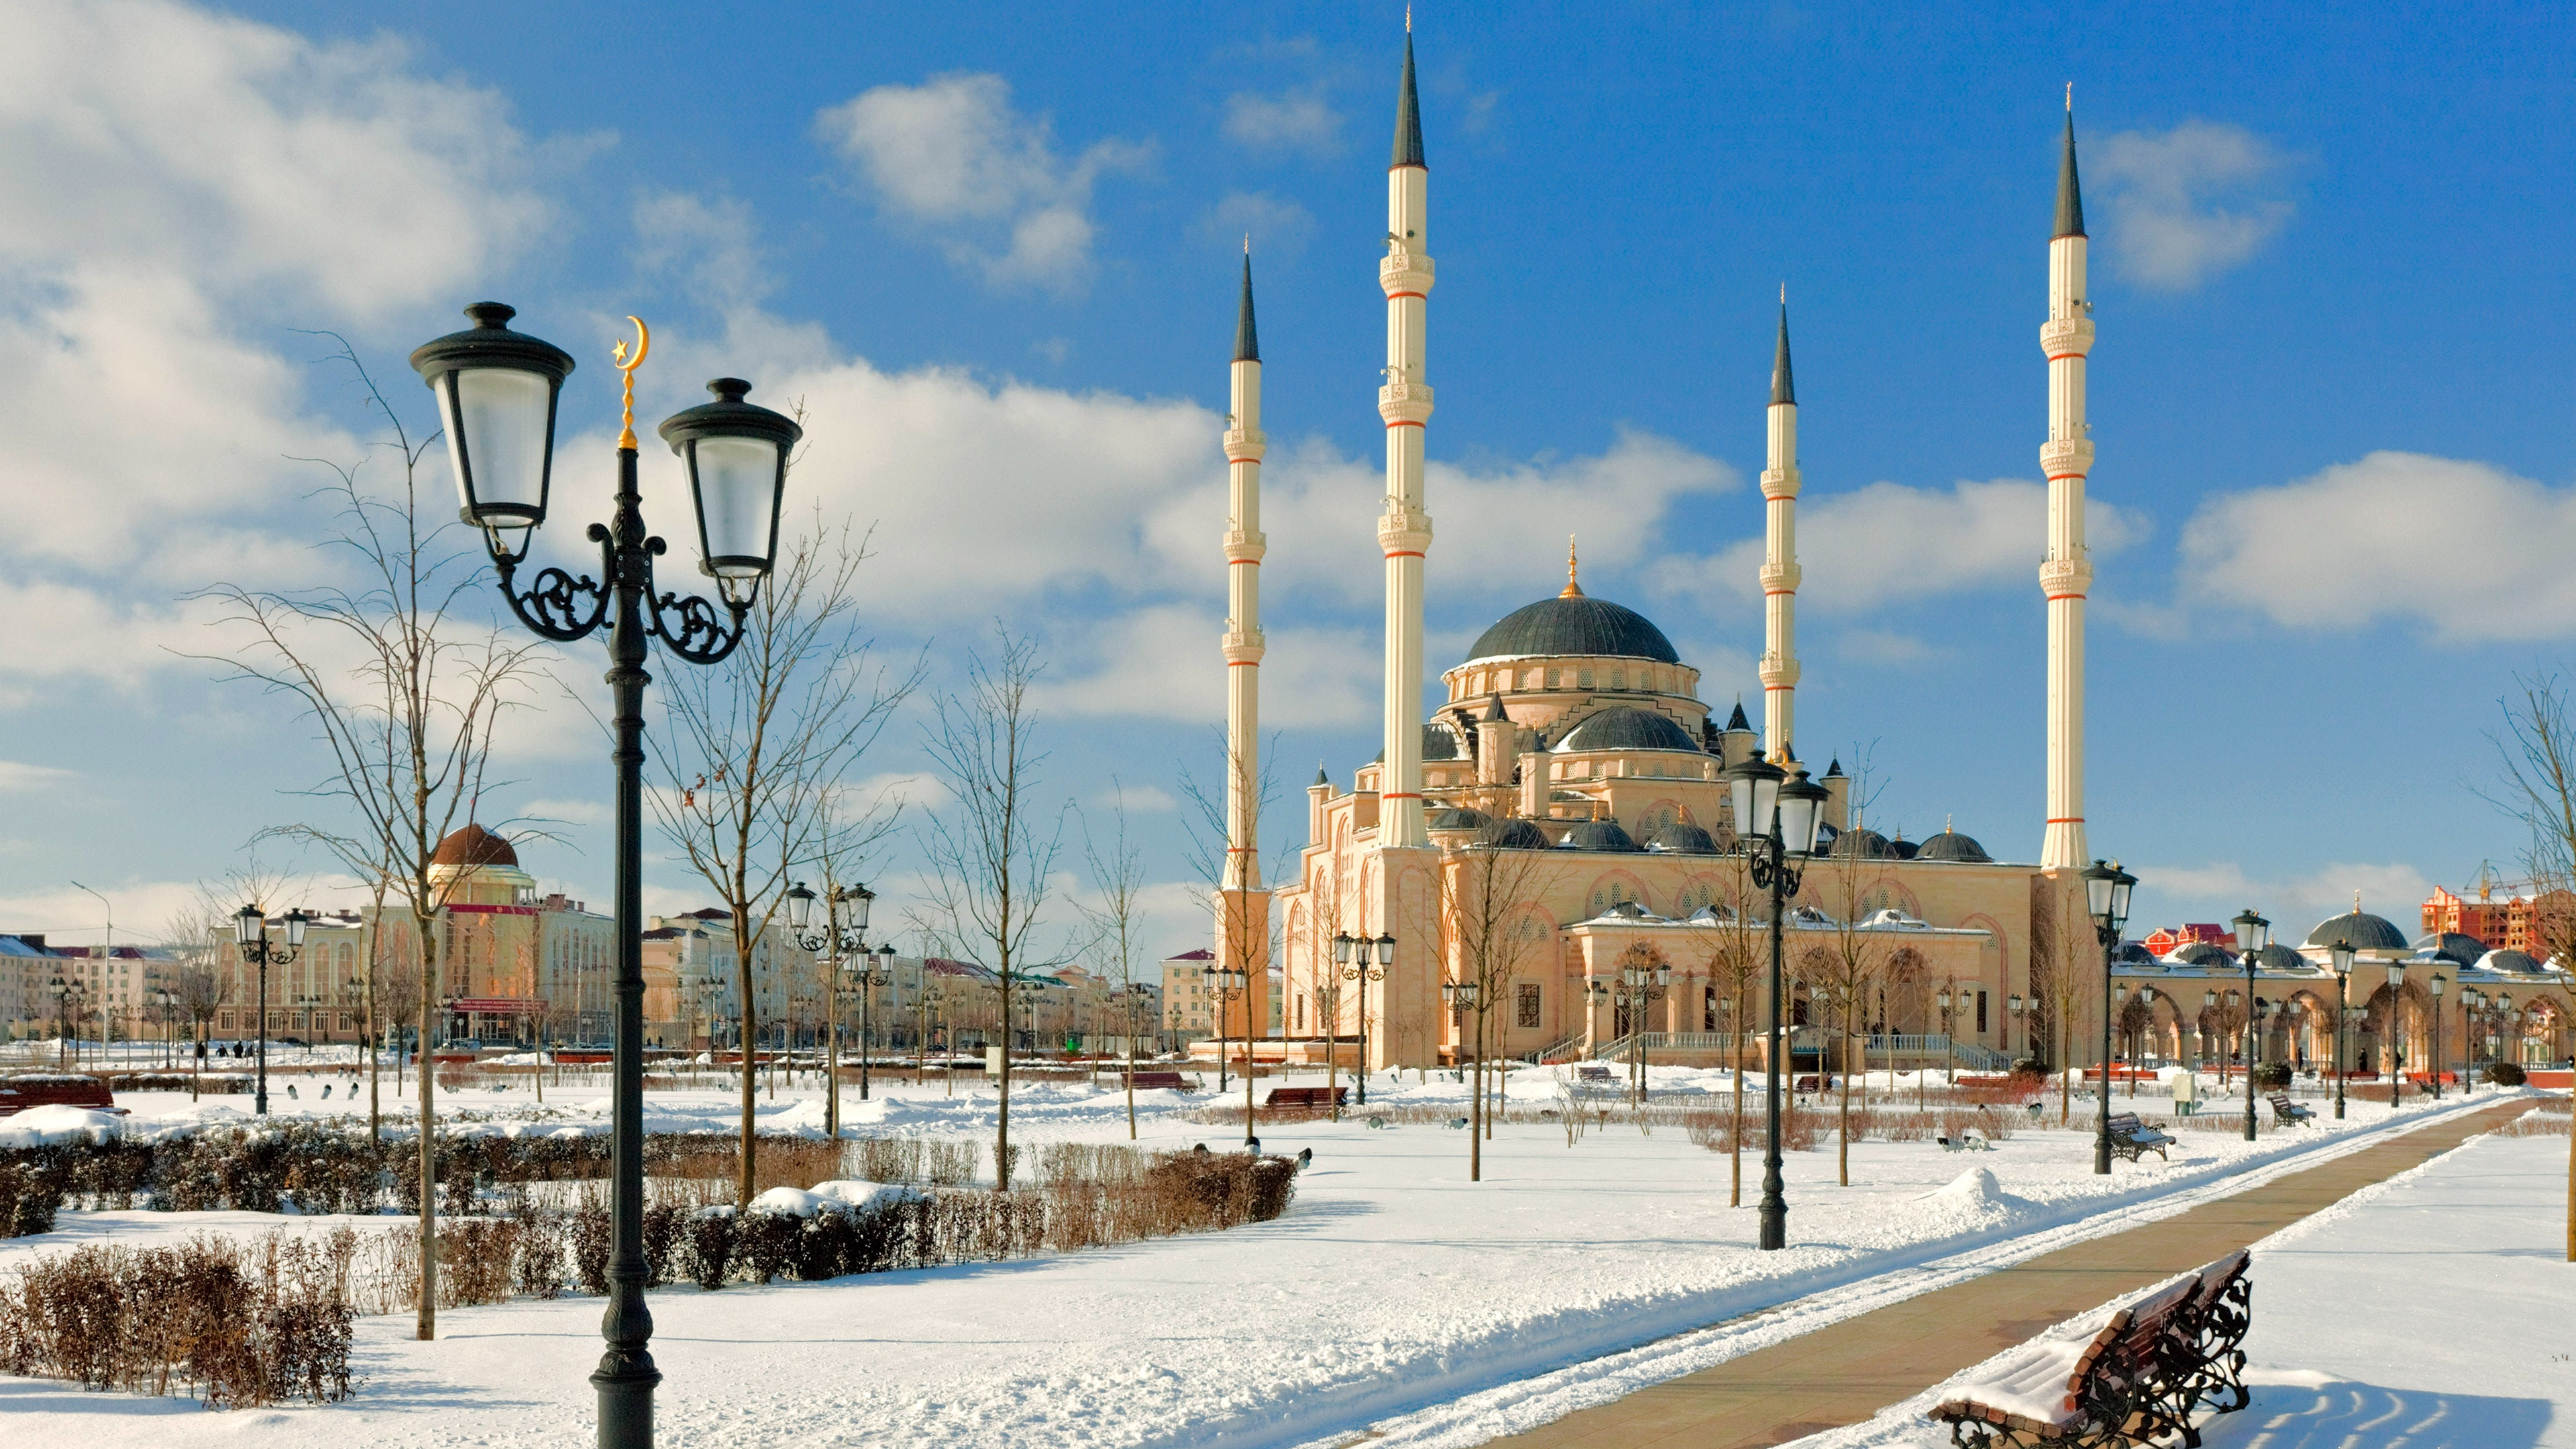 chechnya mosque snow minaret 4k 1538064729 - chechnya, mosque, snow, minaret 4k - Snow, Mosque, chechnya